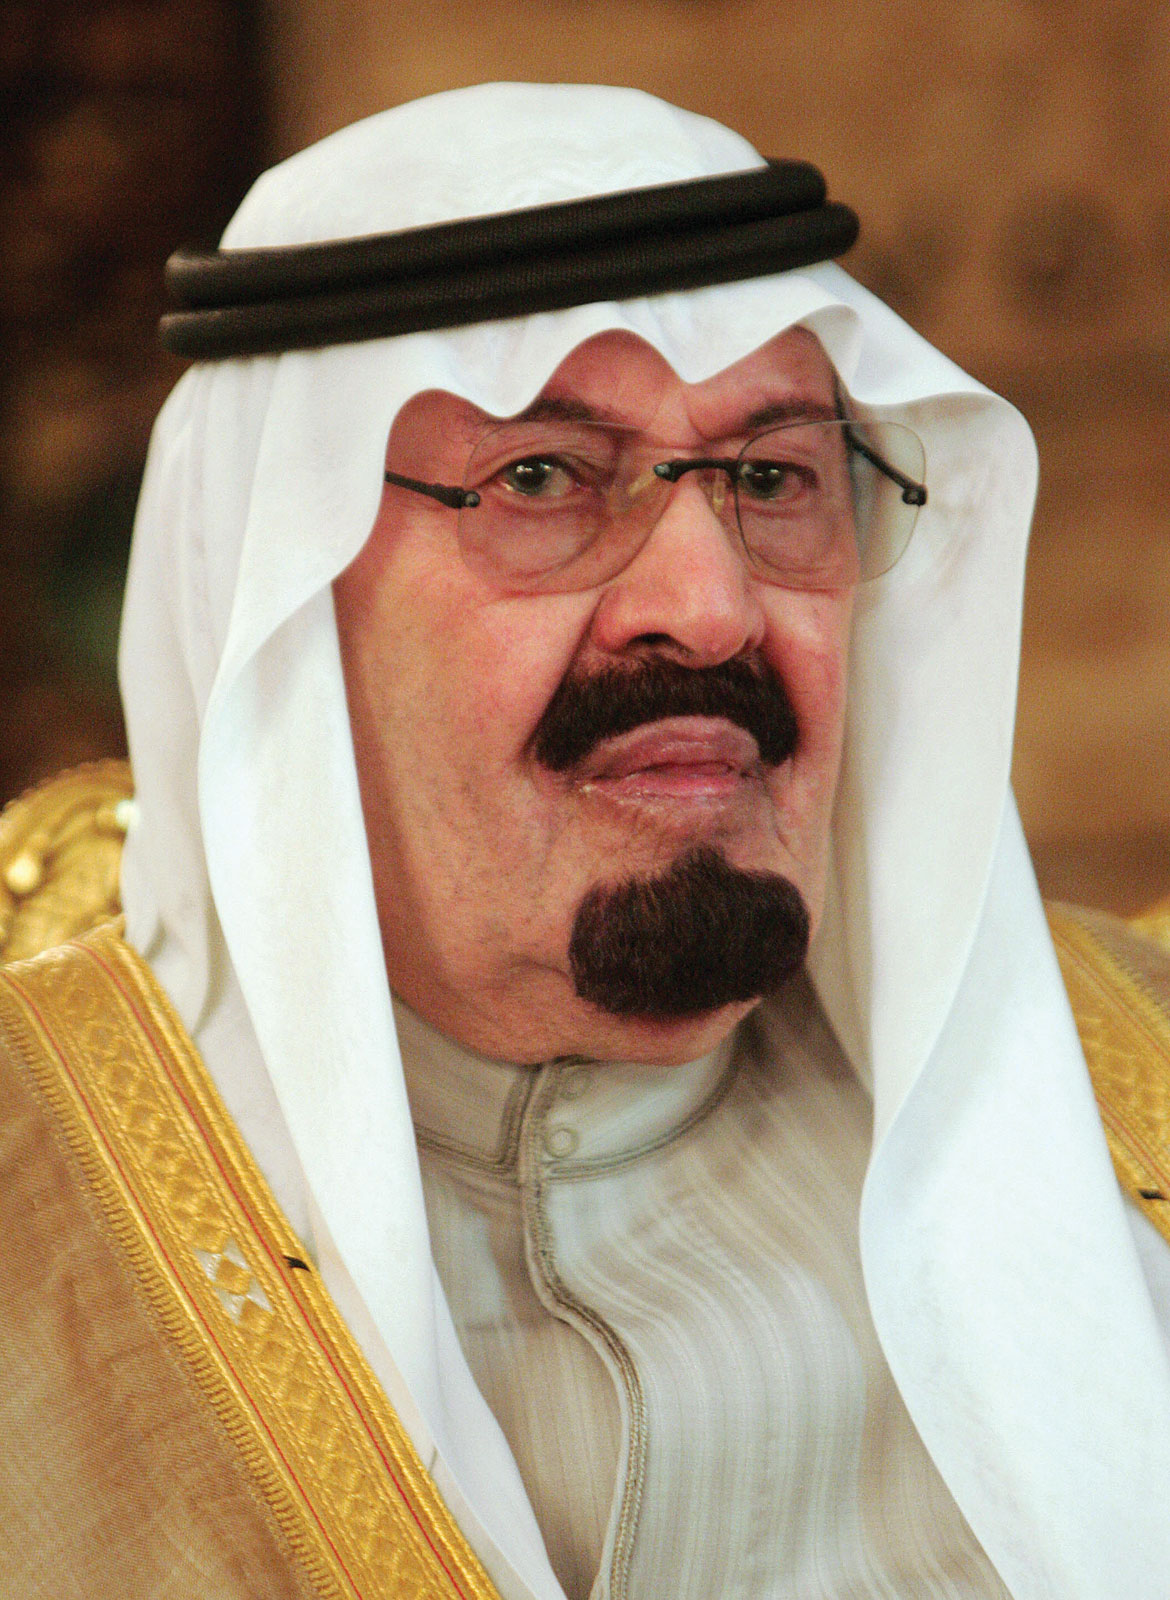 abdullah of saudi arabia essay This is basically a powerpoint that summarizes the main points of my essay, which i also uploaded it's not very interesting, but it includes some of the main facts about king abdullah of saudi arabia.